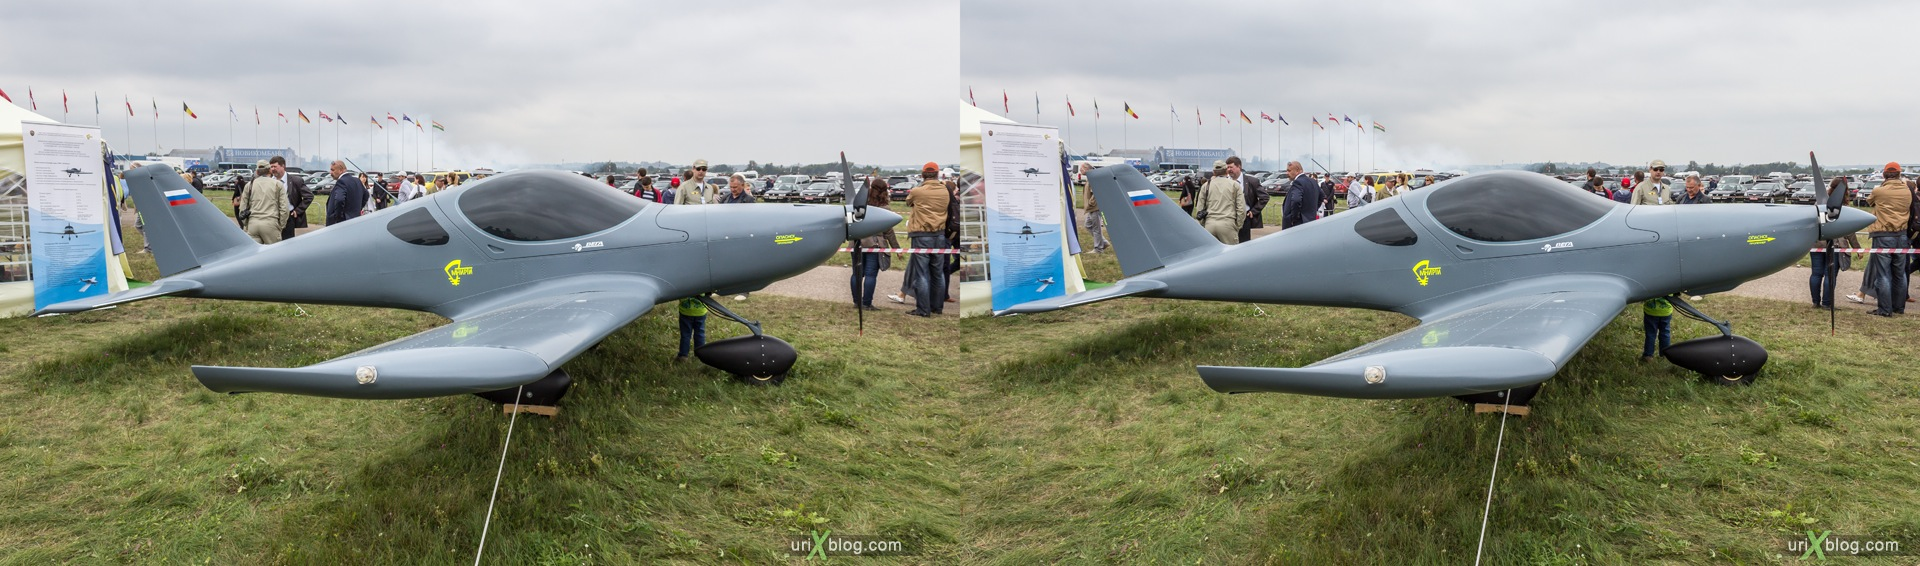 2013, MNIRTI Vega Shmel, MAKS, International Aviation and Space Salon, Russia, Ramenskoye airfield, airplane, 3D, stereo pair, cross-eyed, crossview, cross view stereo pair, stereoscopic